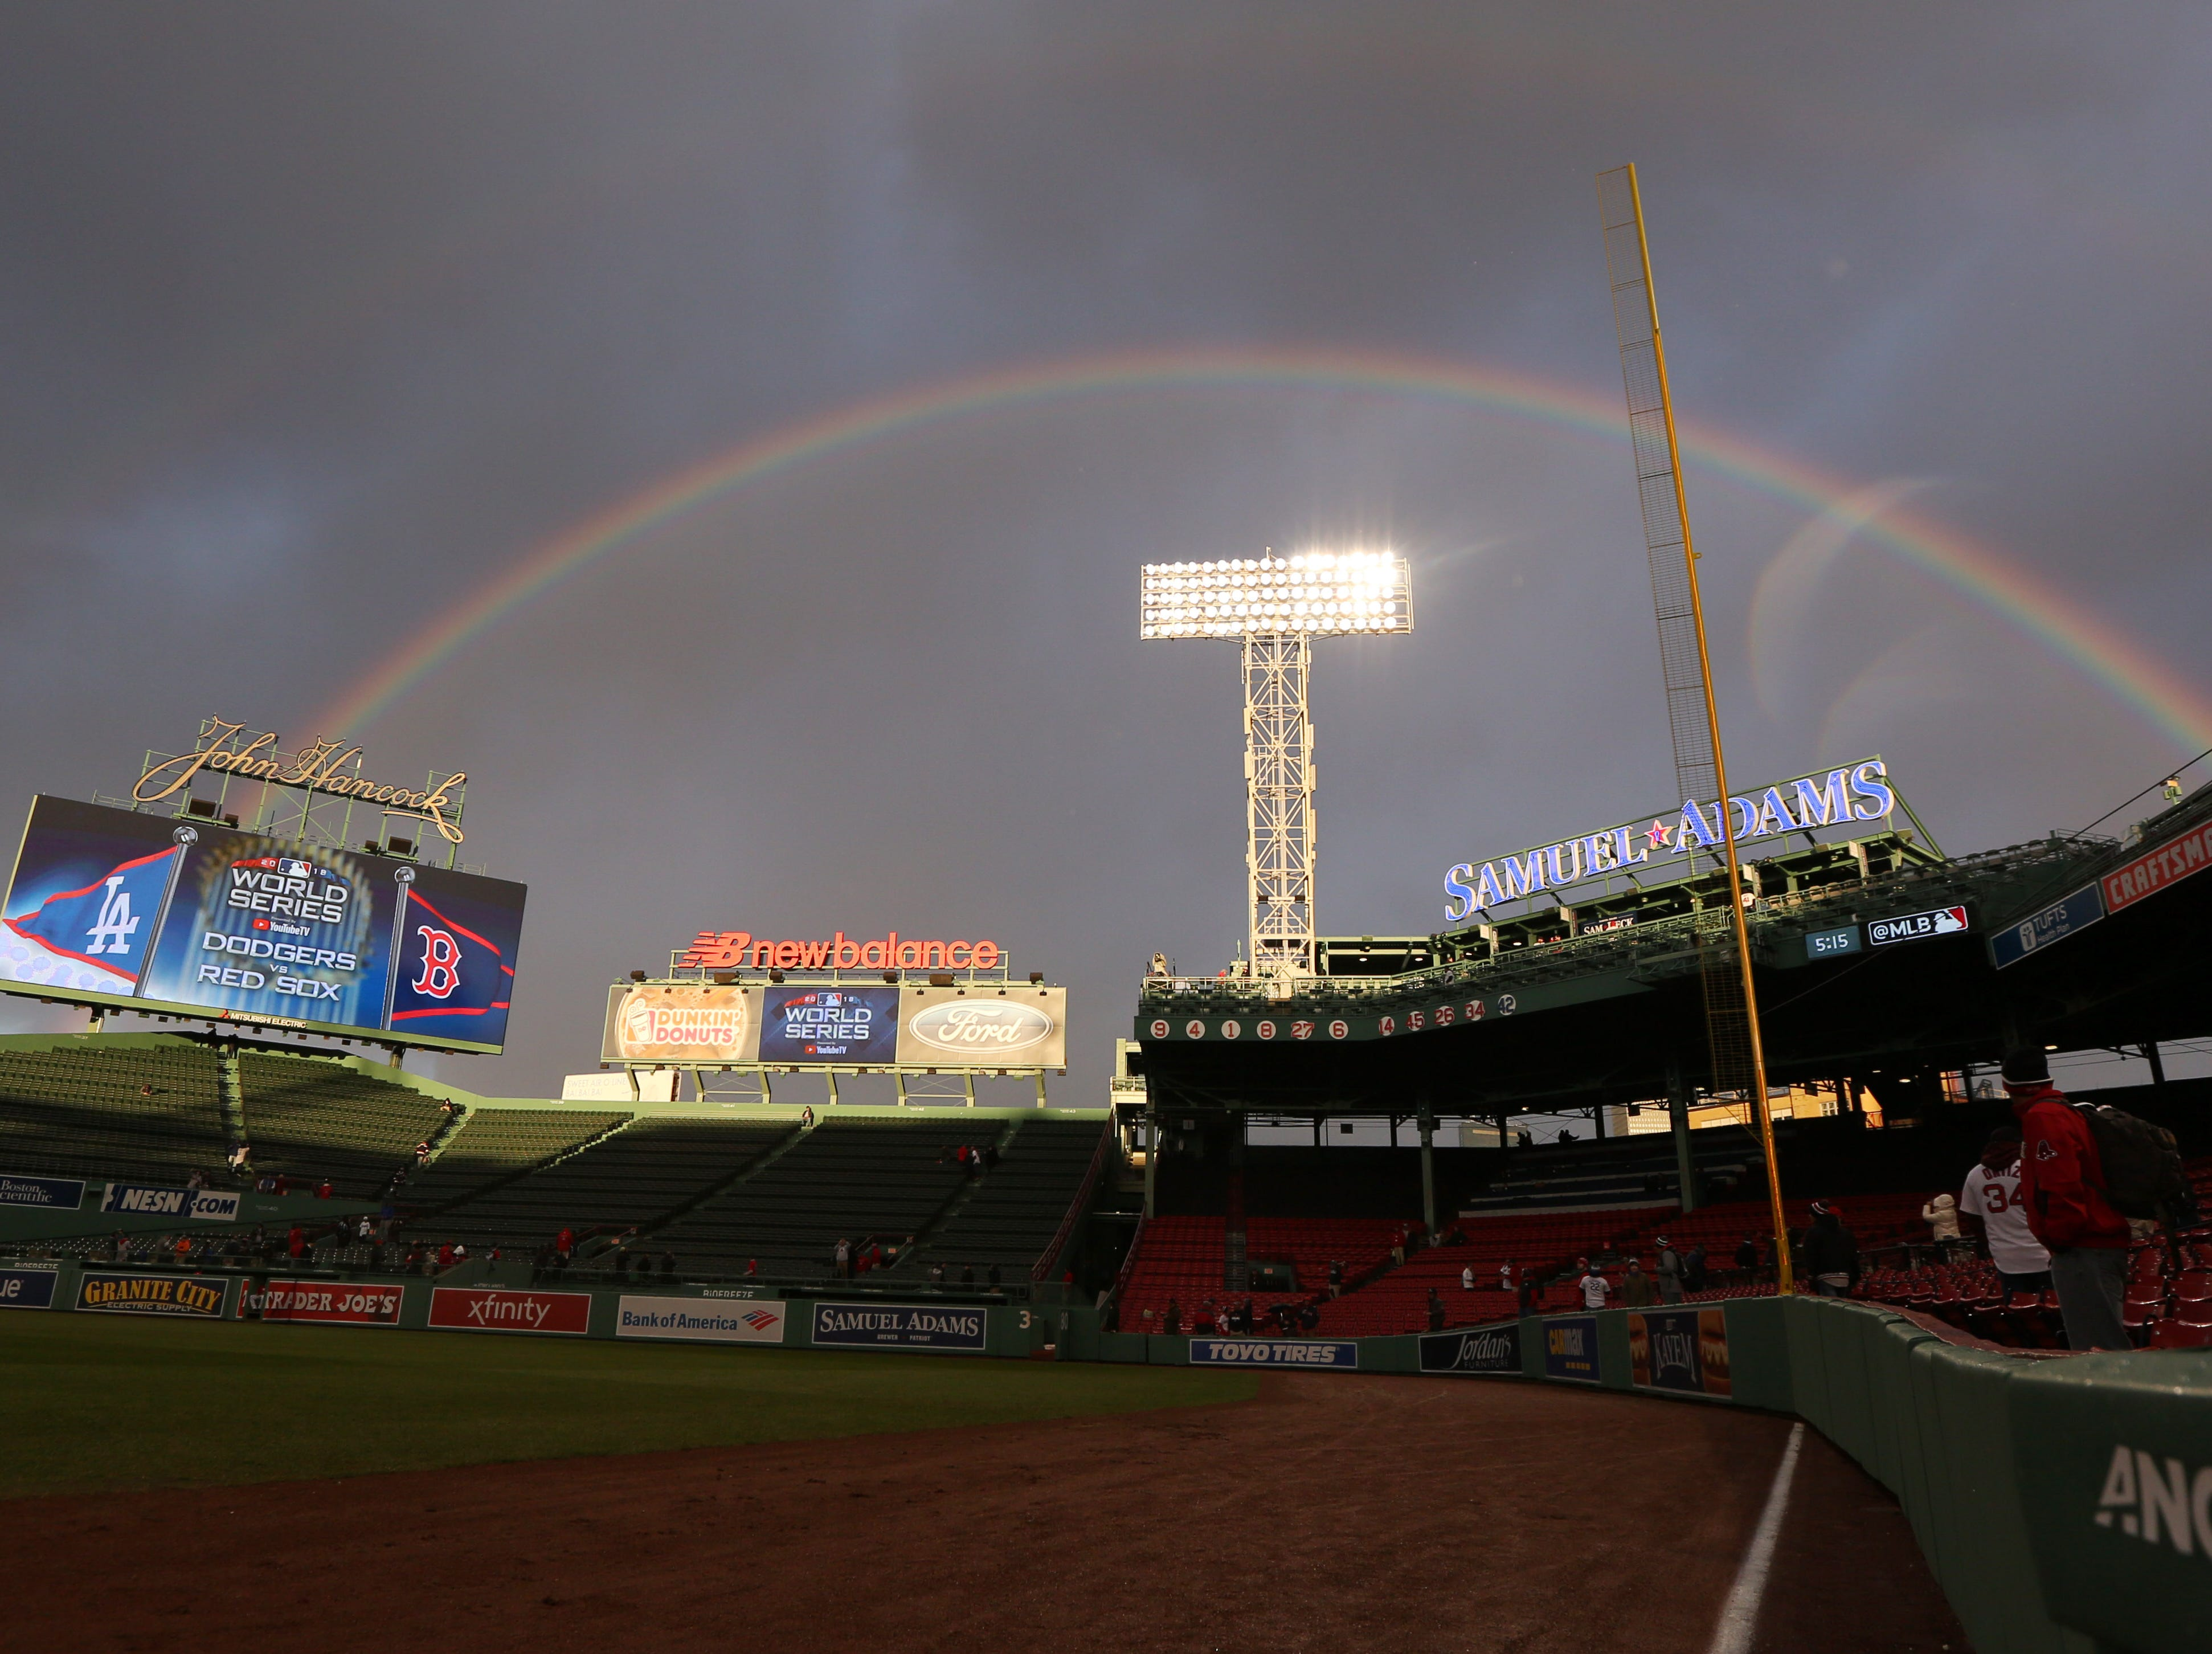 Game 2 at Fenway Park: A double rainbow appears before the game.